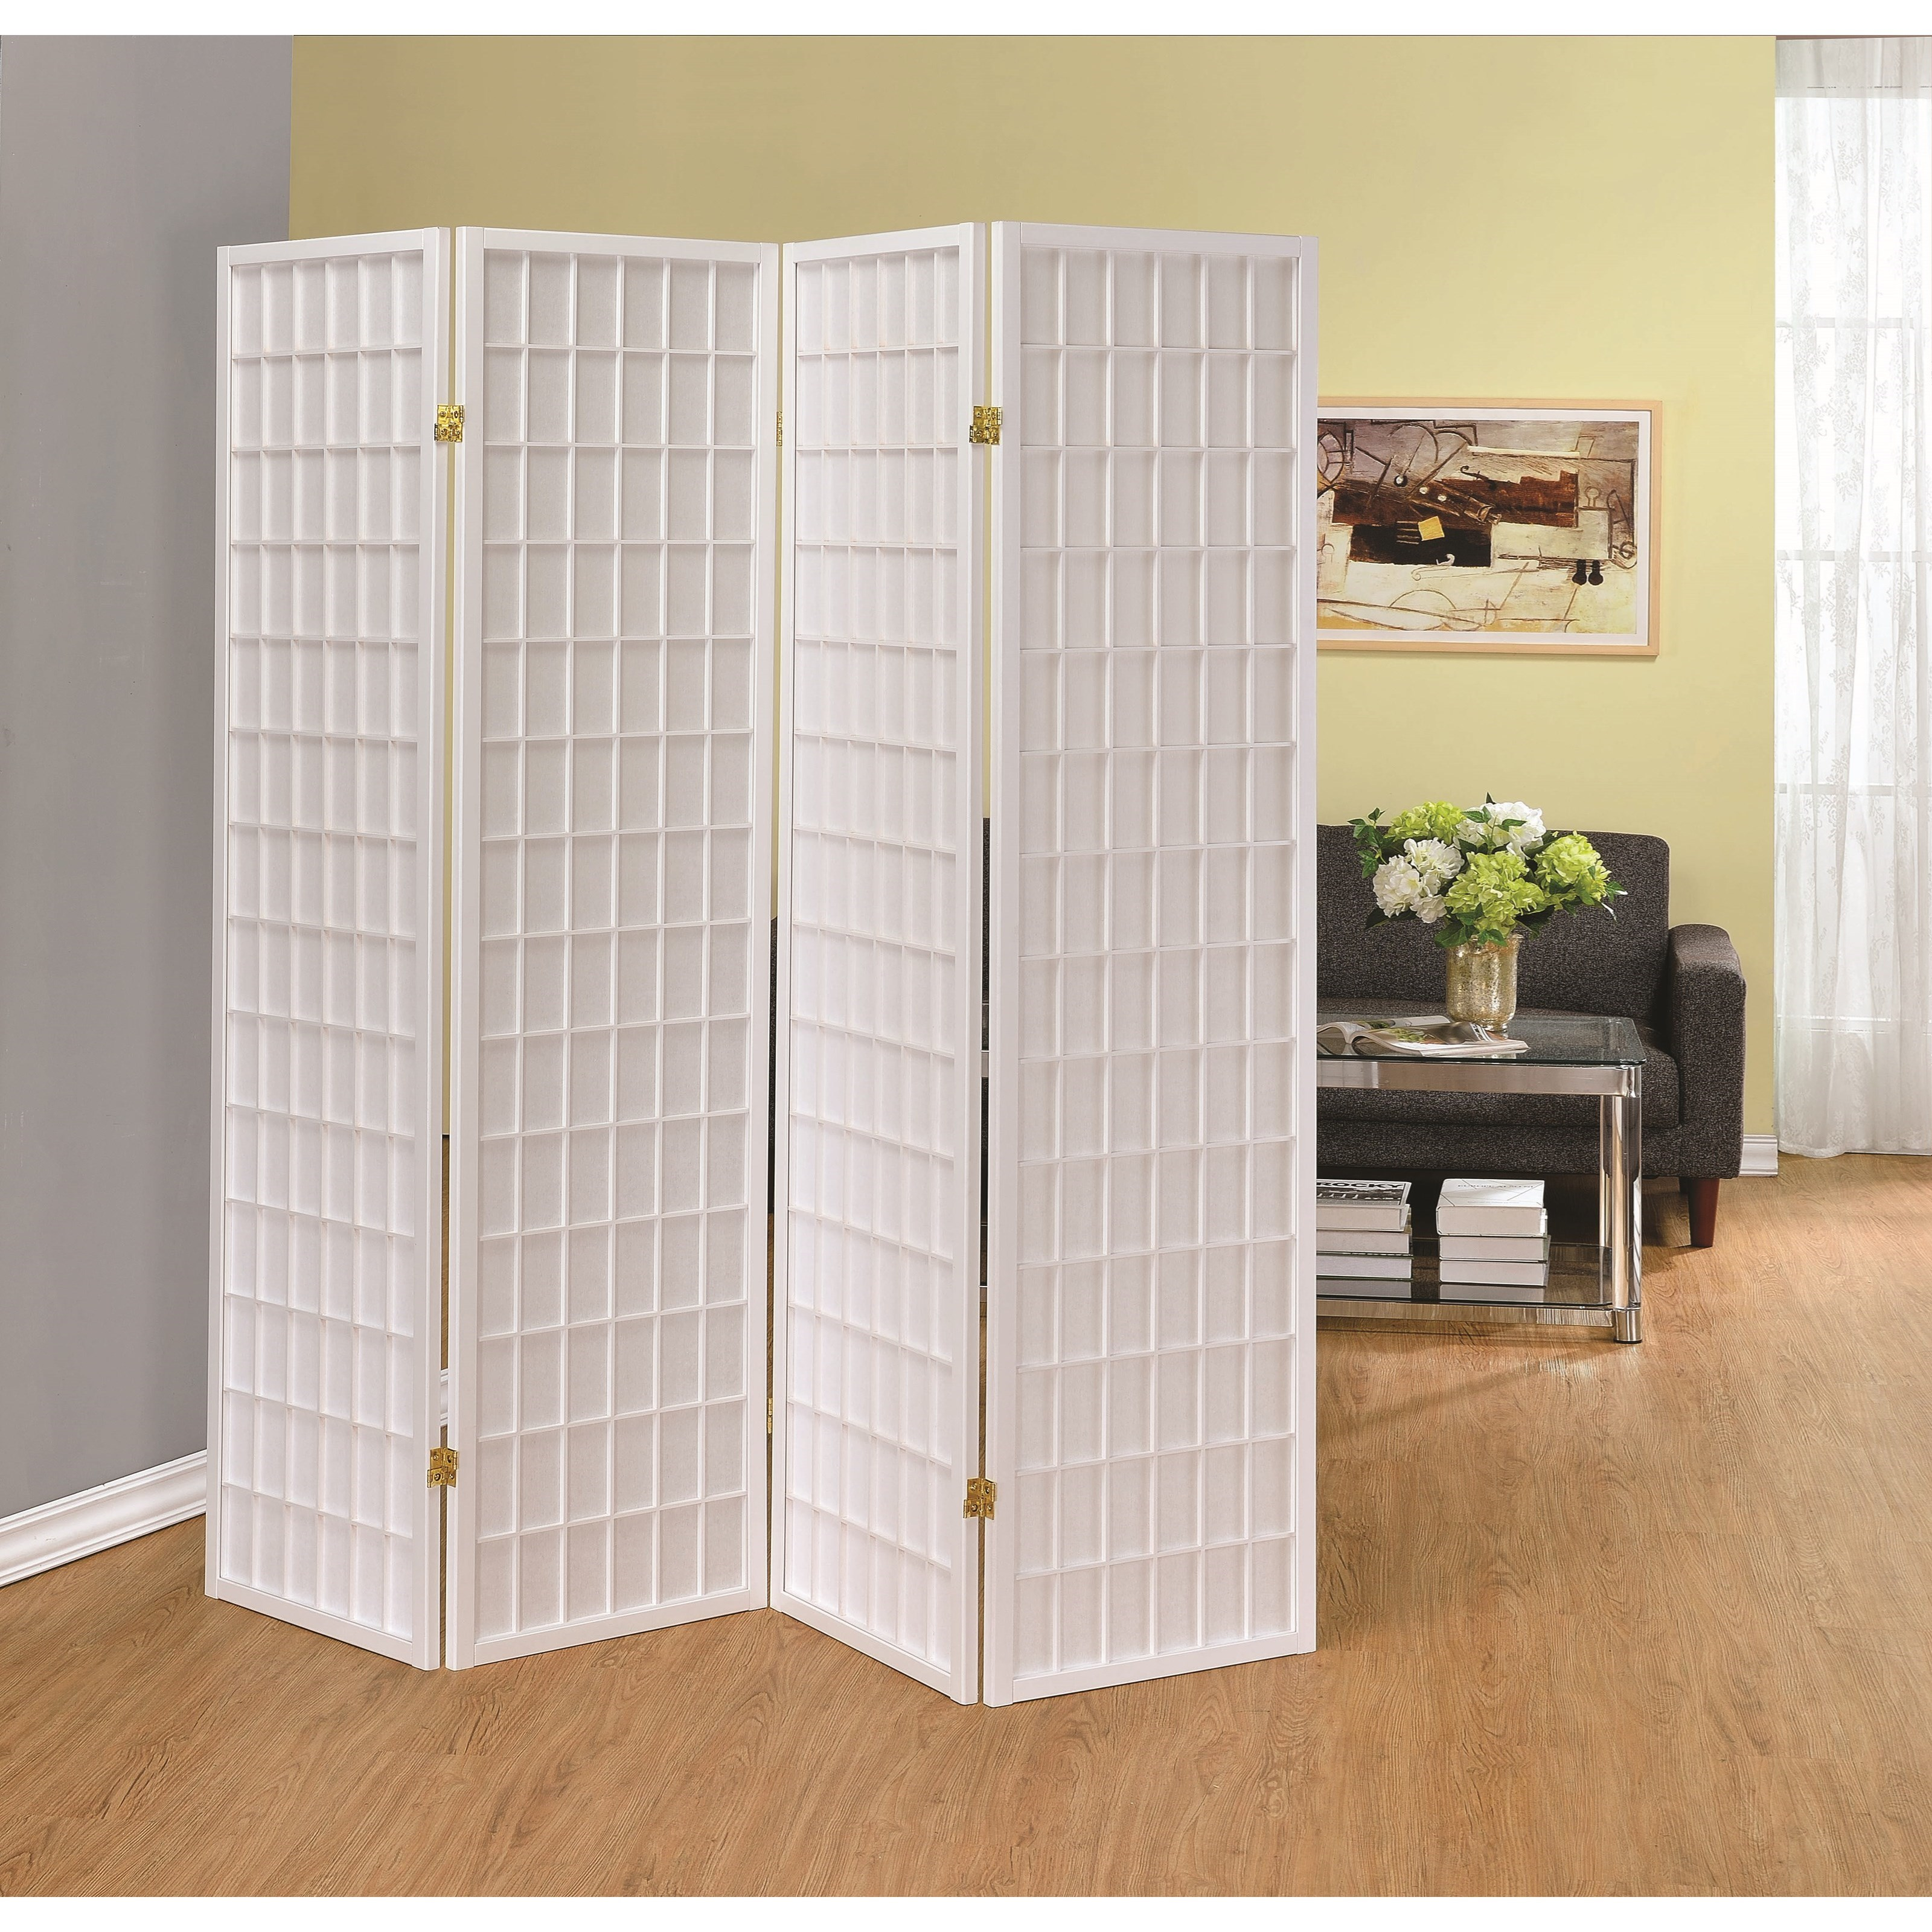 Coaster folding screens 902626 four panel white folding for Photo screen room dividers